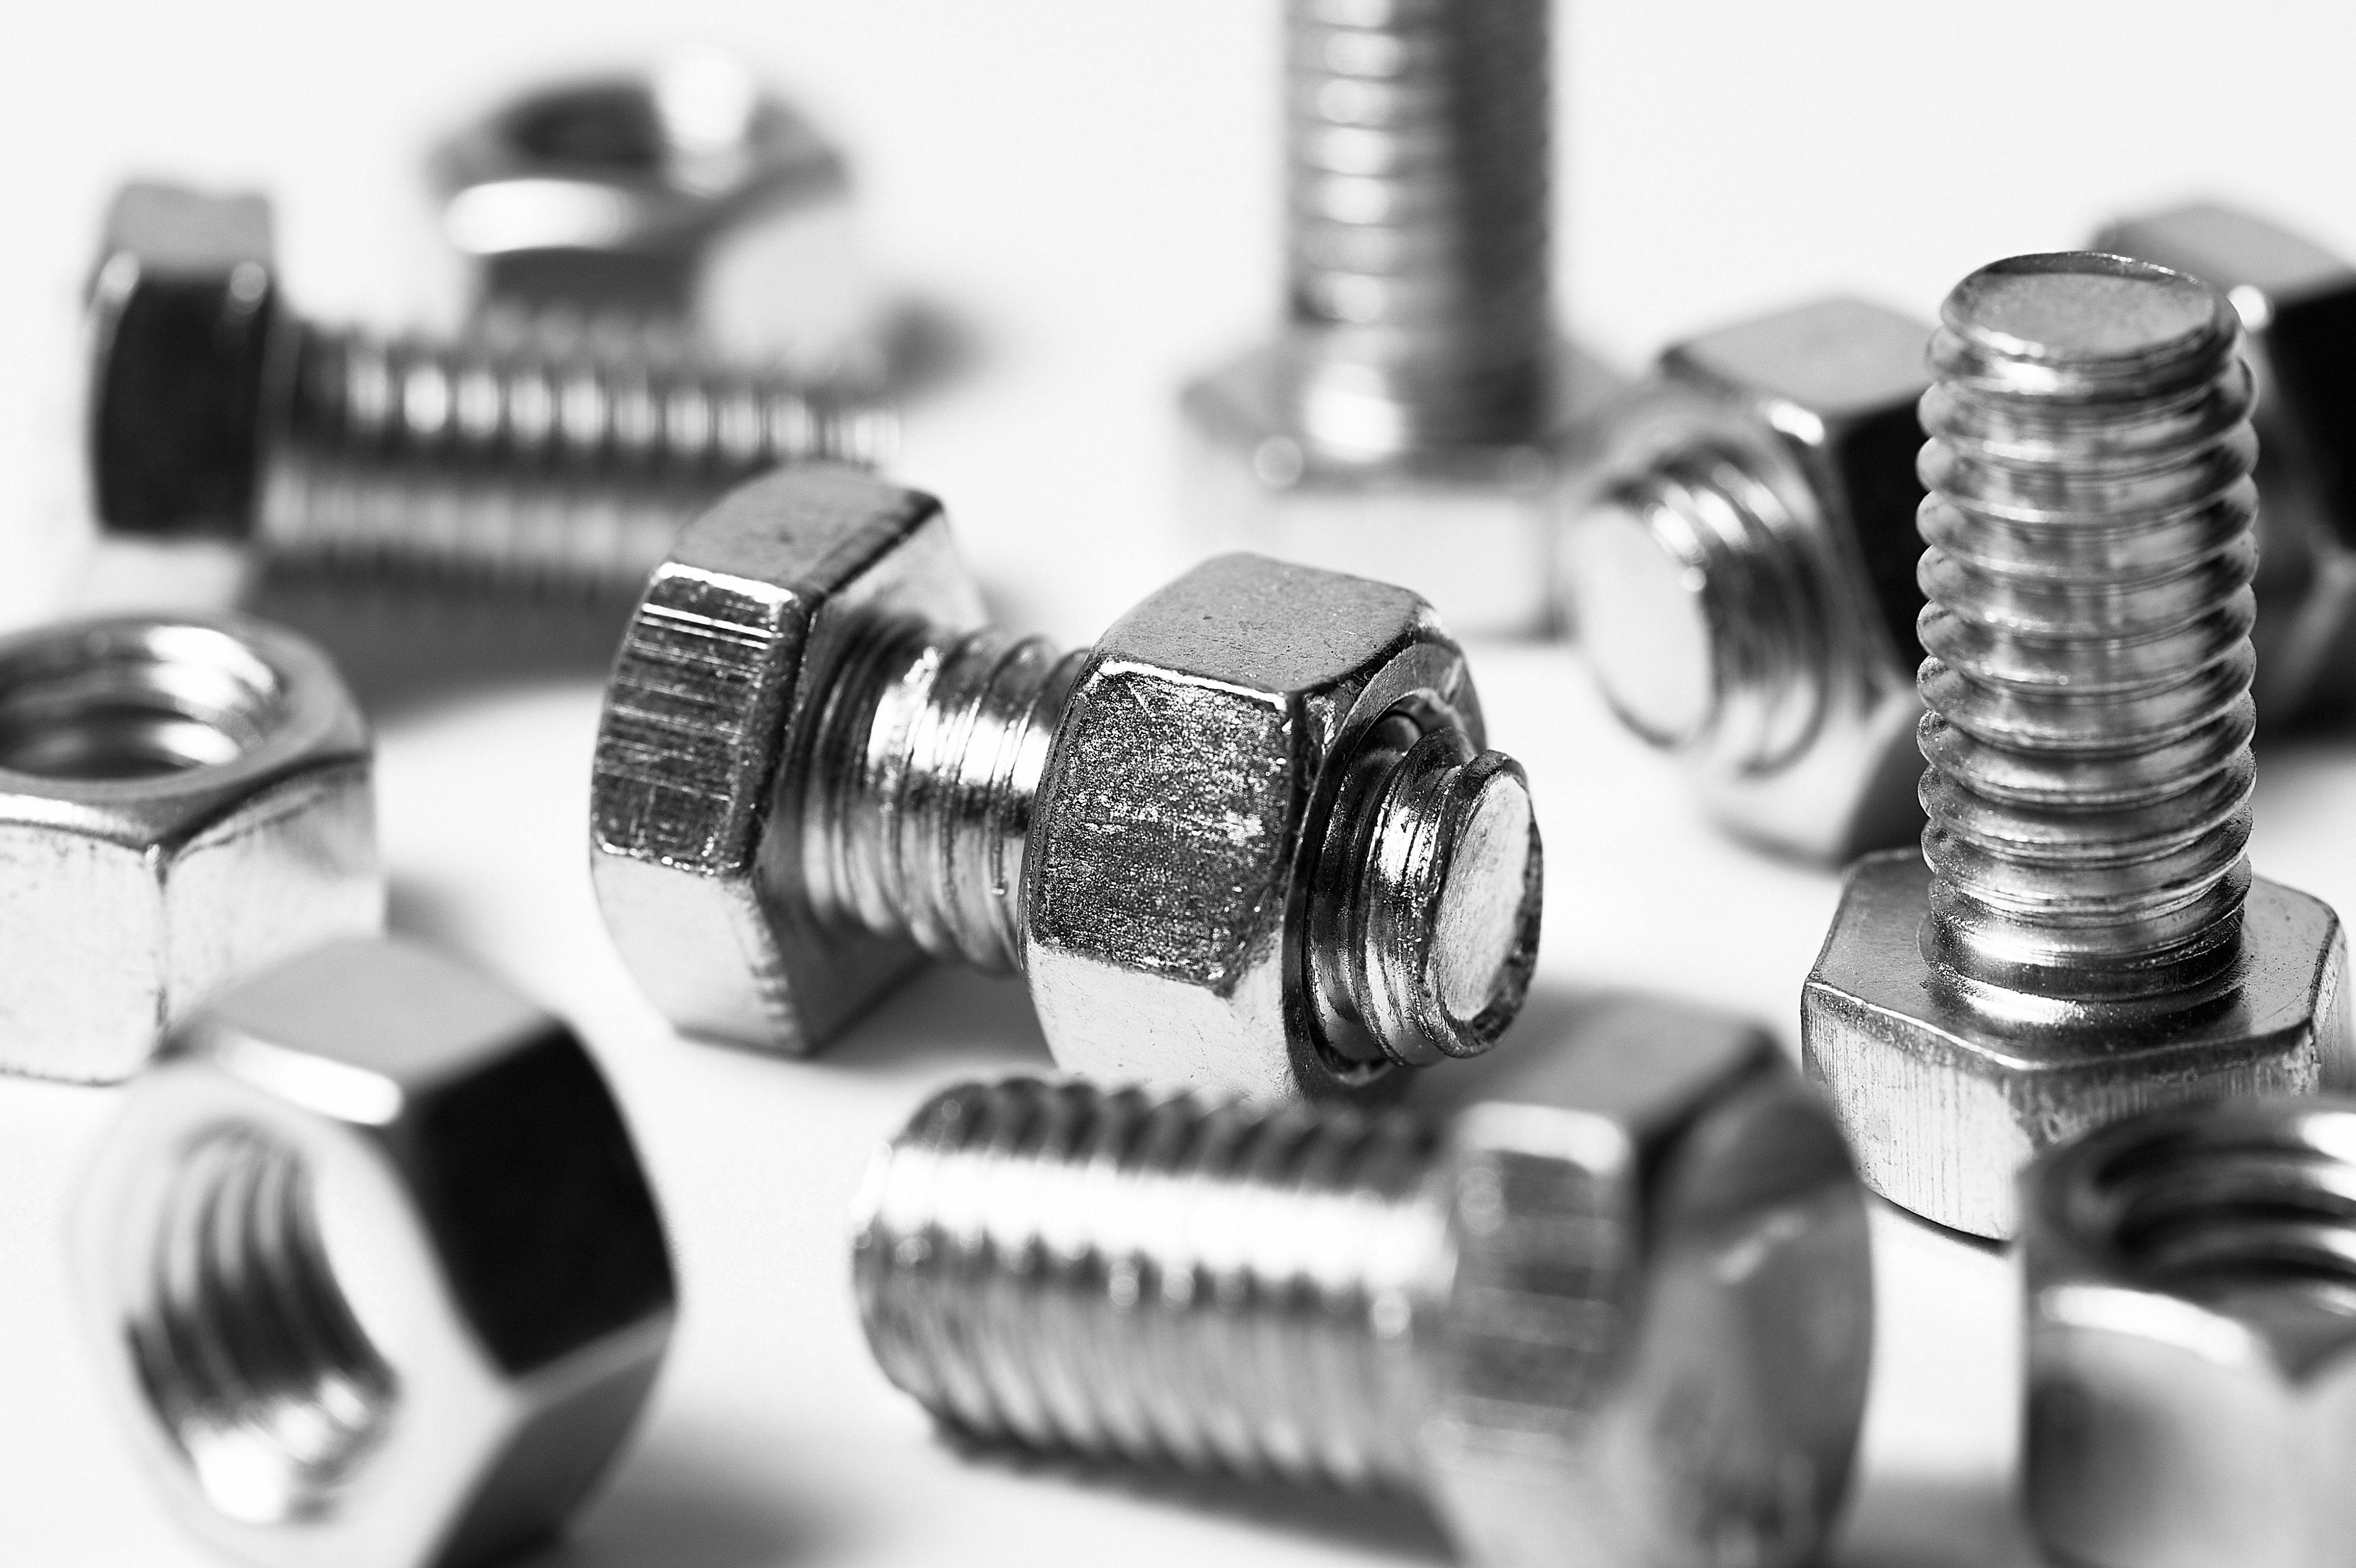 A black and white image of nuts and bolts to go with the next part of the series called 'Thirteen Years'.